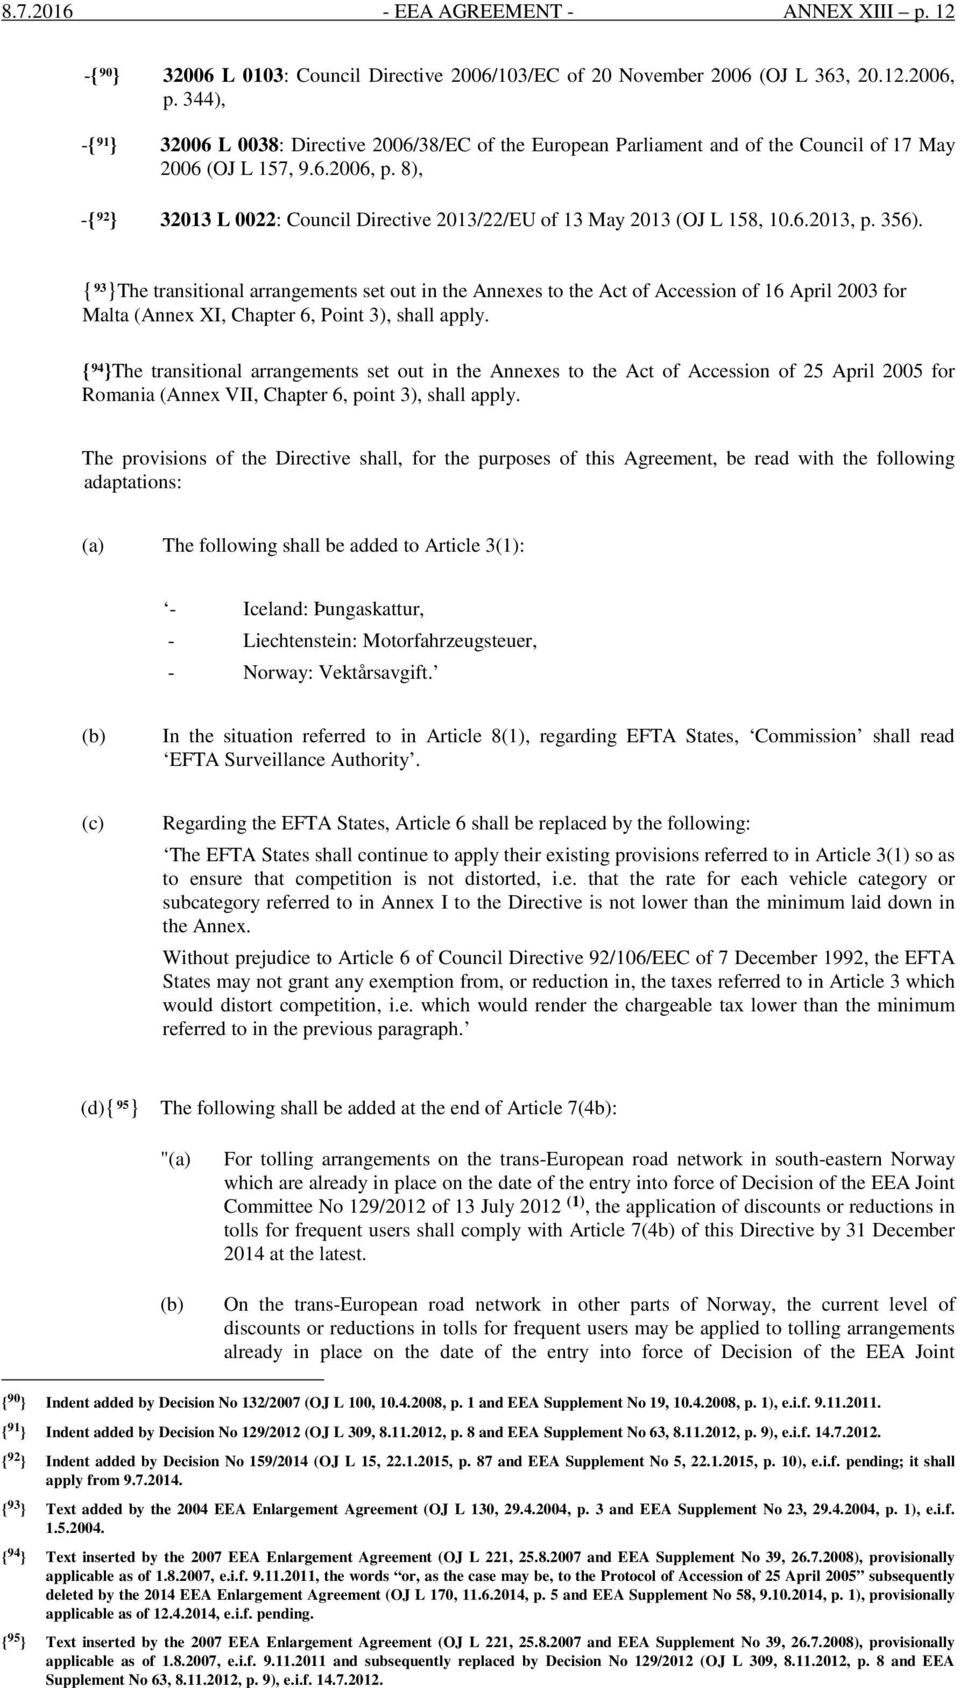 8), -{ 92 } 32013 L 0022: Council Directive 2013/22/EU of 13 May 2013 (OJ L 158, 10.6.2013, p. 356).